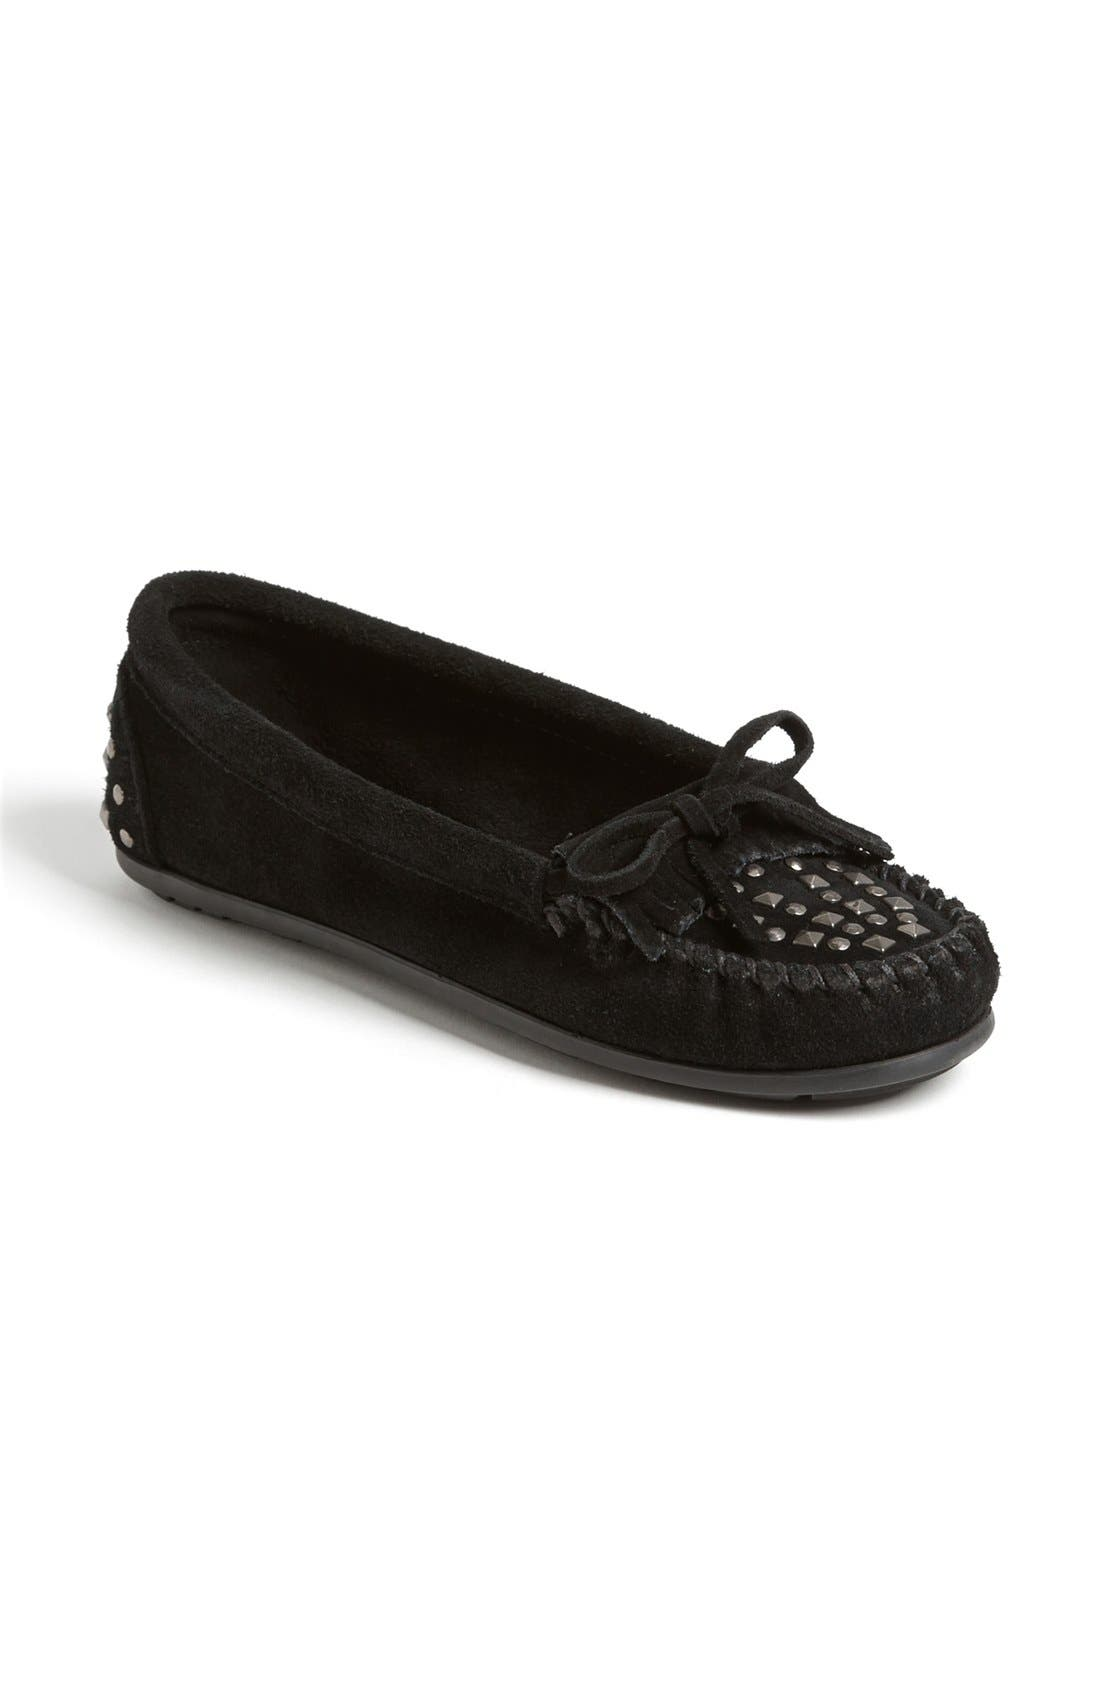 Main Image - Minnetonka Double Studded Moccasin (Regular Retail Price: $49.95)